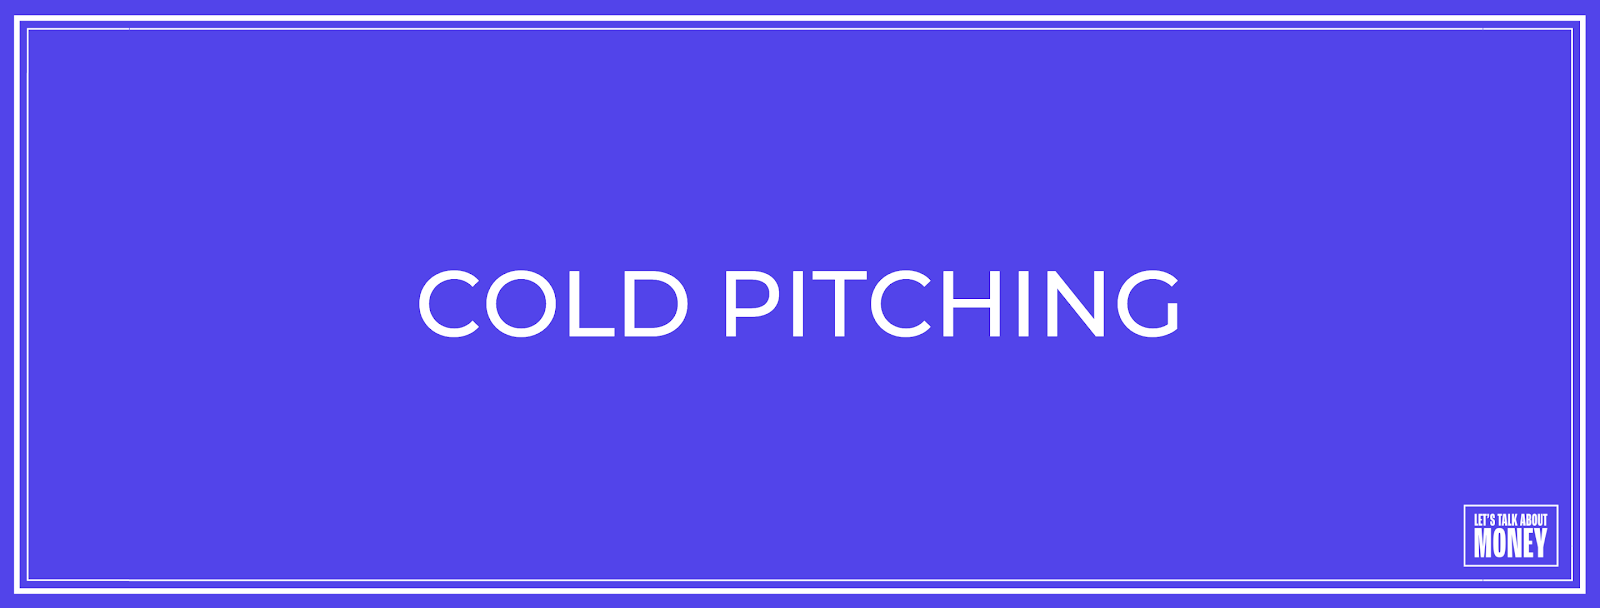 Cold Pitching